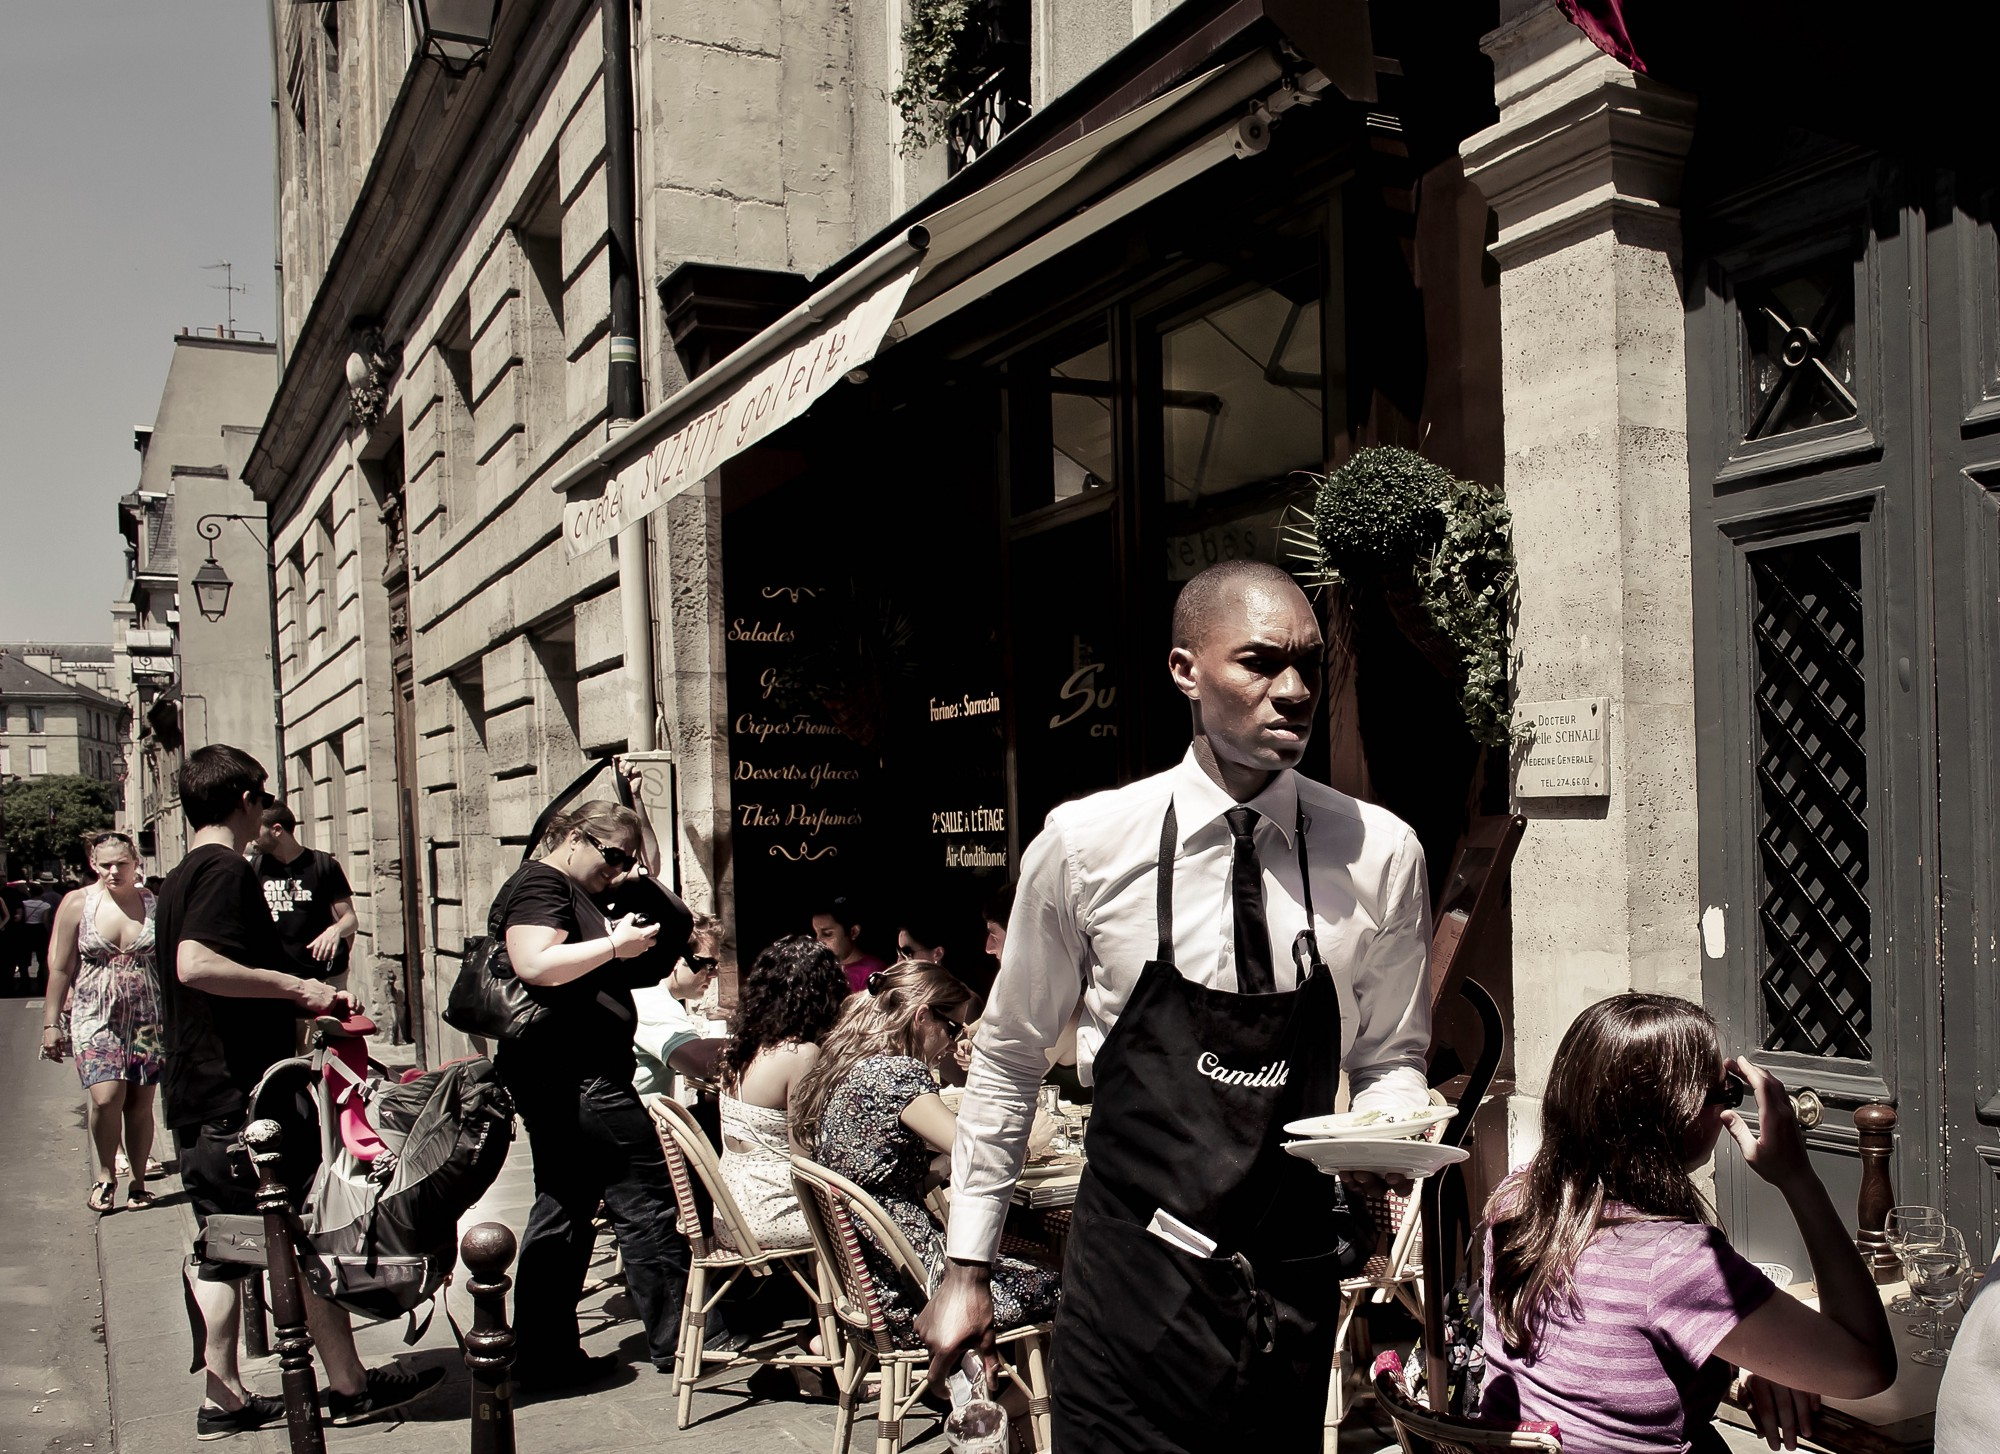 A waiter on the streets of Paris who is important to the story of an old man and his friend in Paris